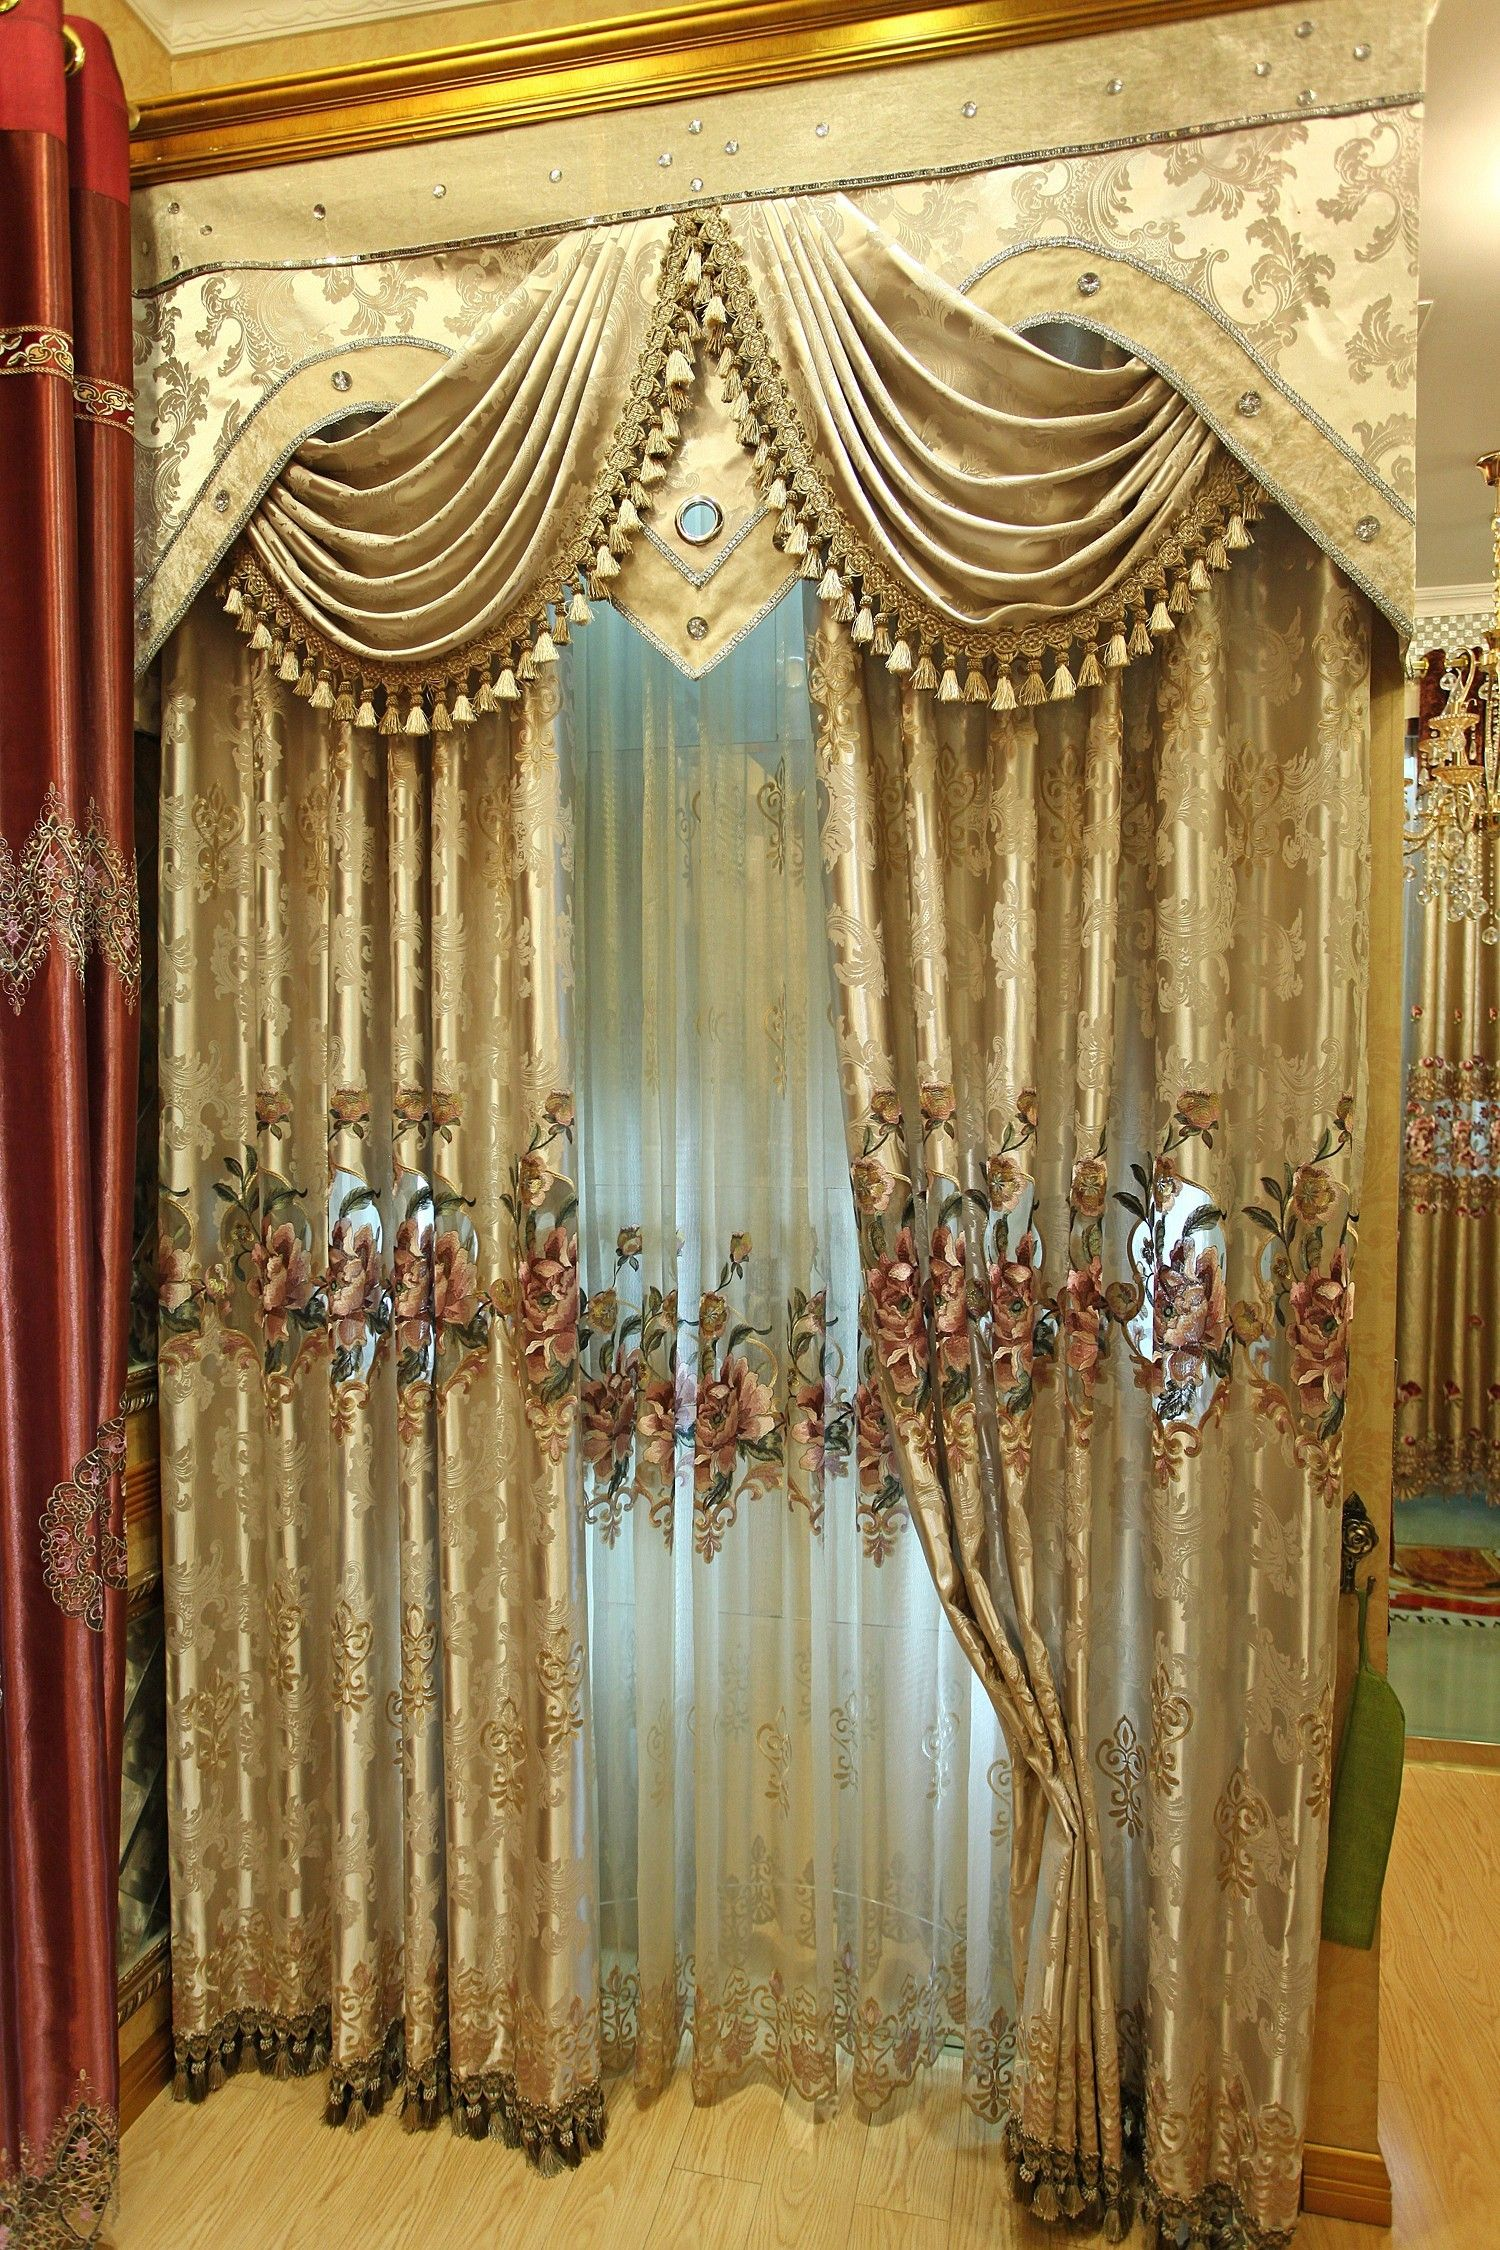 Curtain Design Ideas For Living Room: Luxury High-grade Embroidery Curtains The